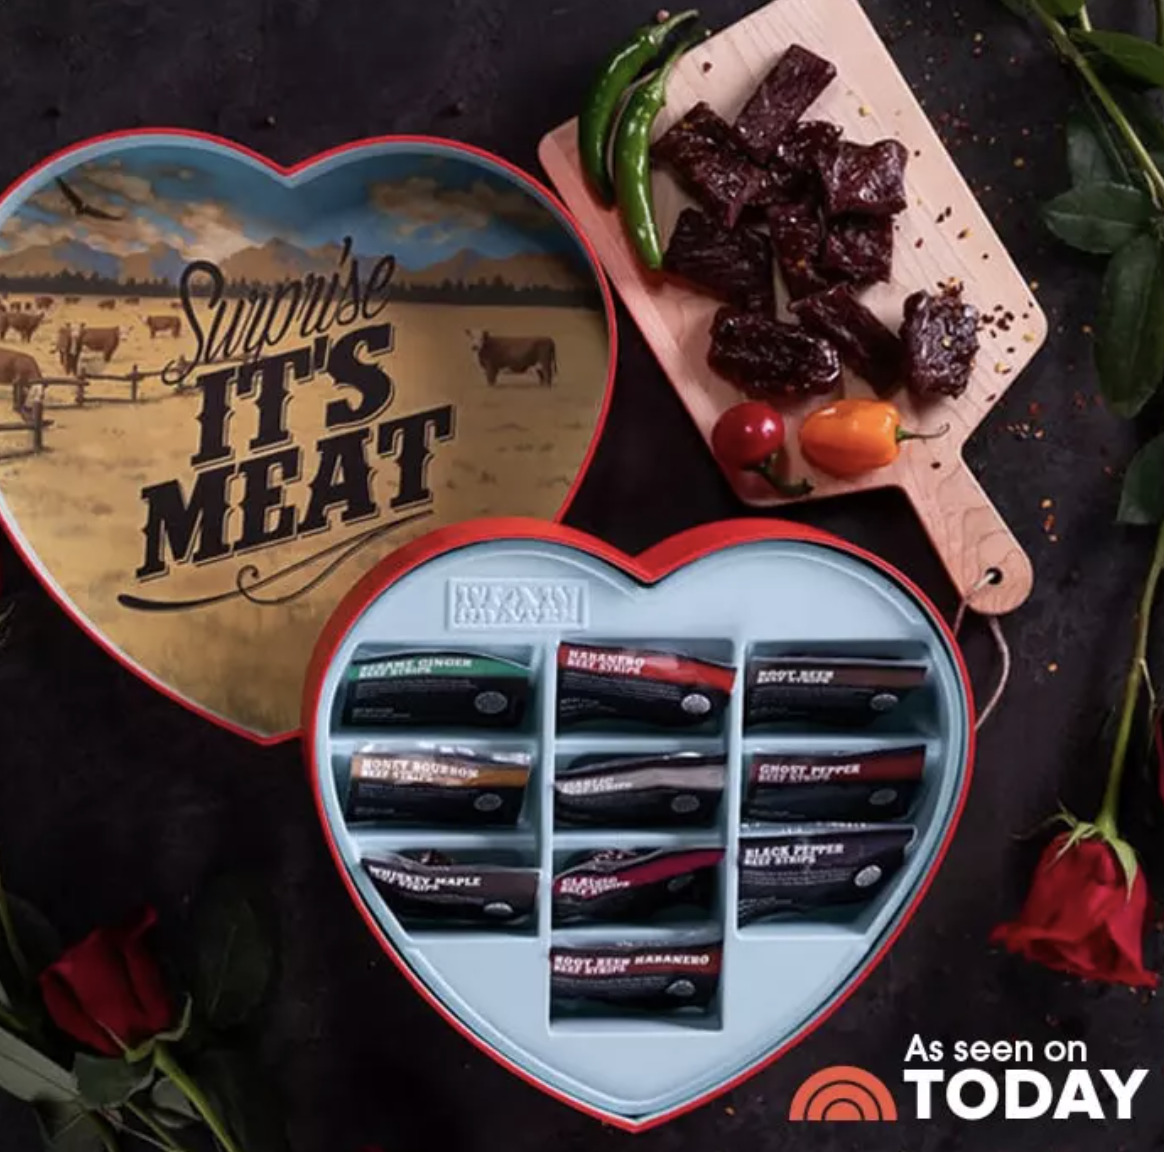 a heart shaped box filled with jerky